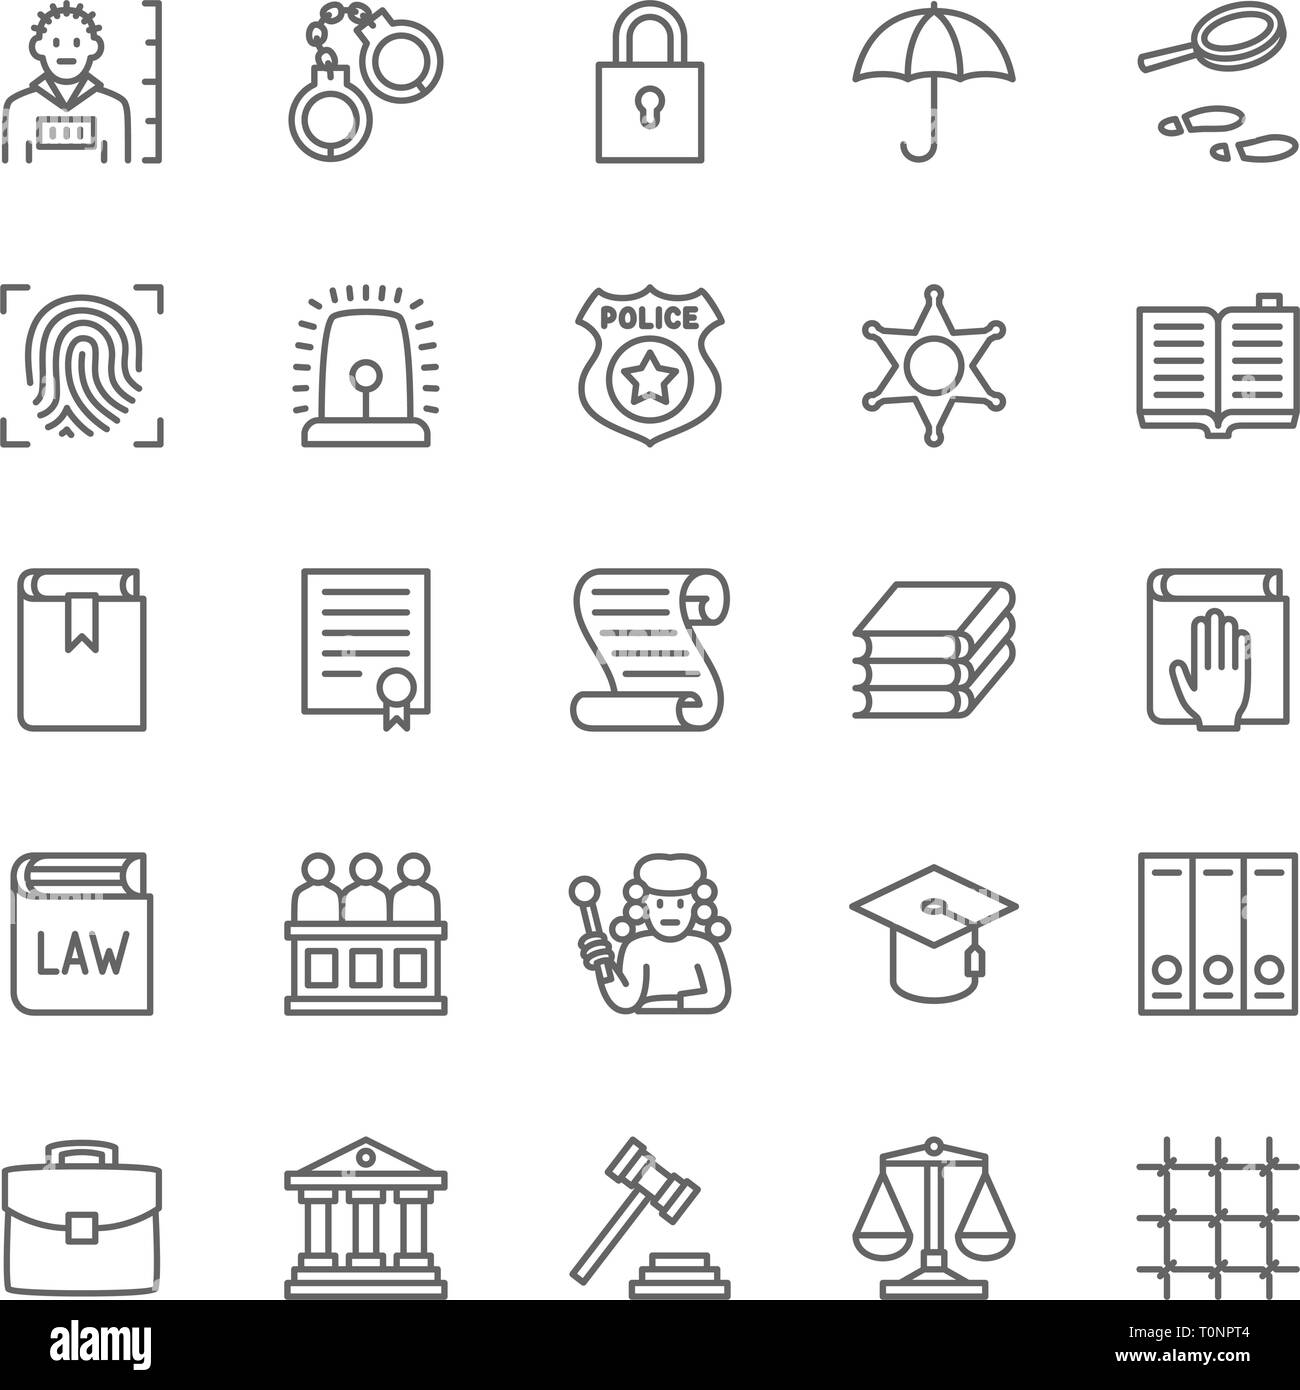 Set of Law and Justice Line Icons. Criminal, Handcuffs, Libra, Police and more. - Stock Vector